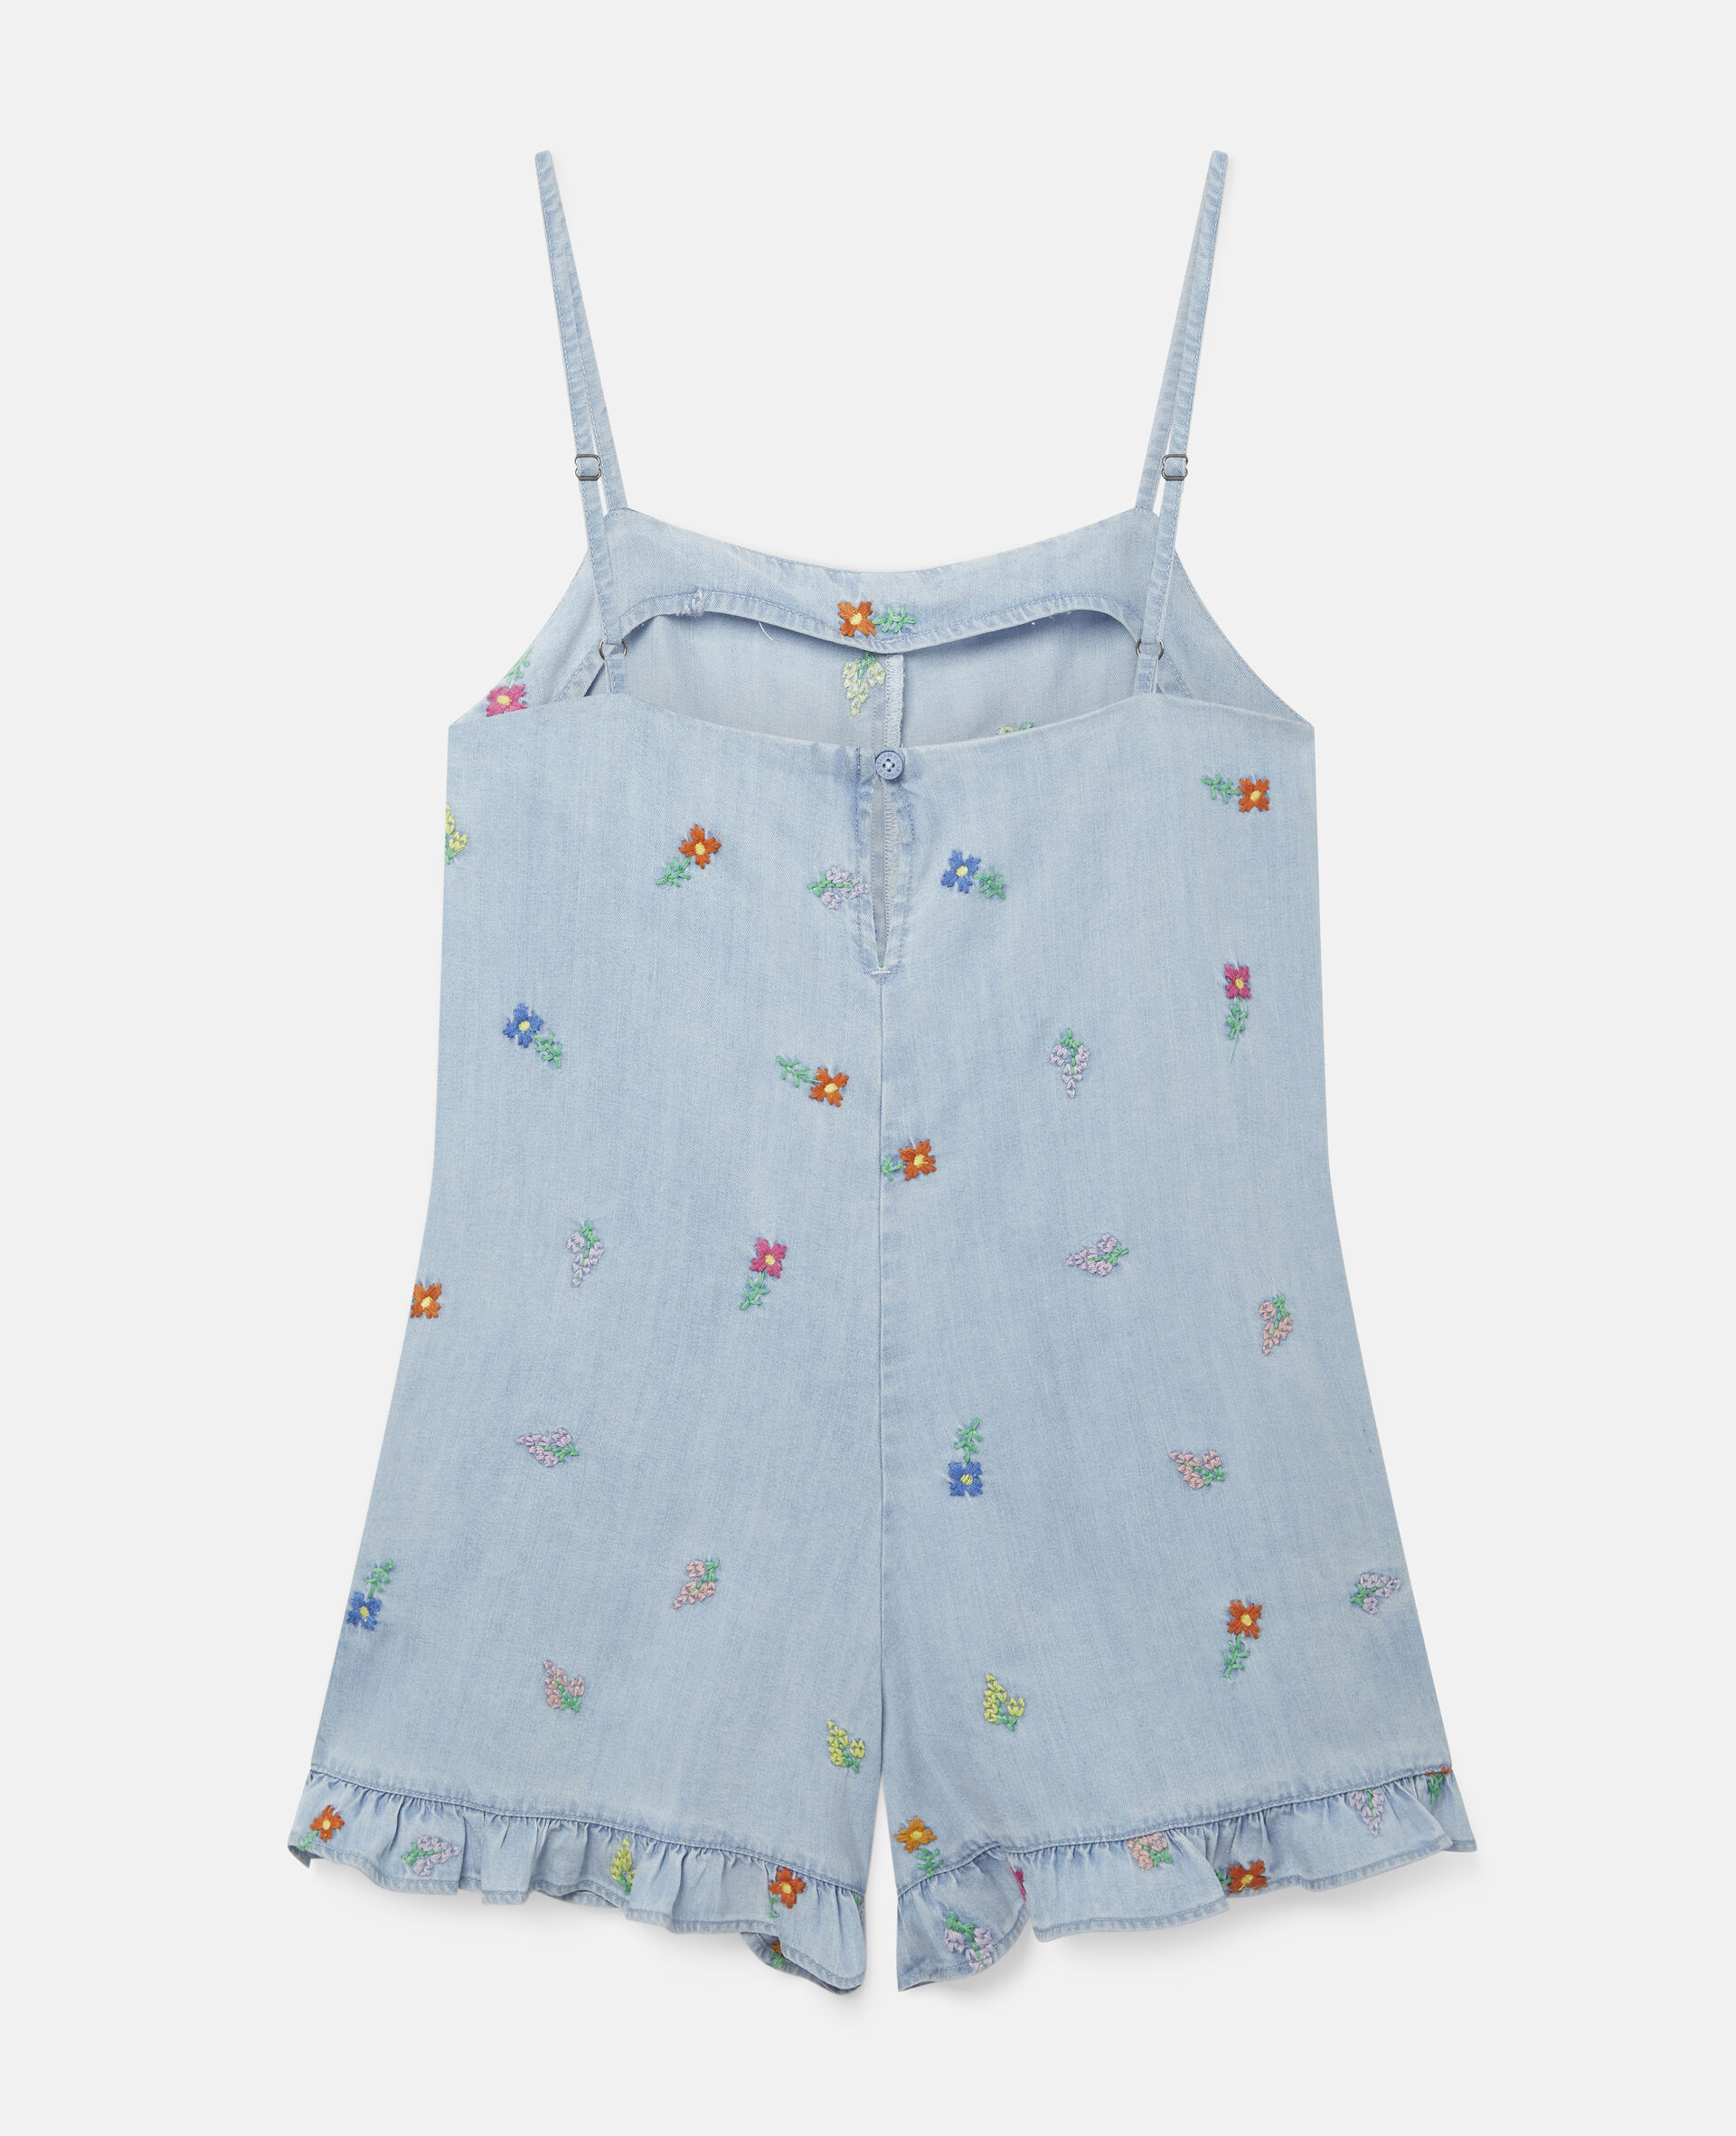 Embroidered Flowers Denim All-In-One-Blue-large image number 3